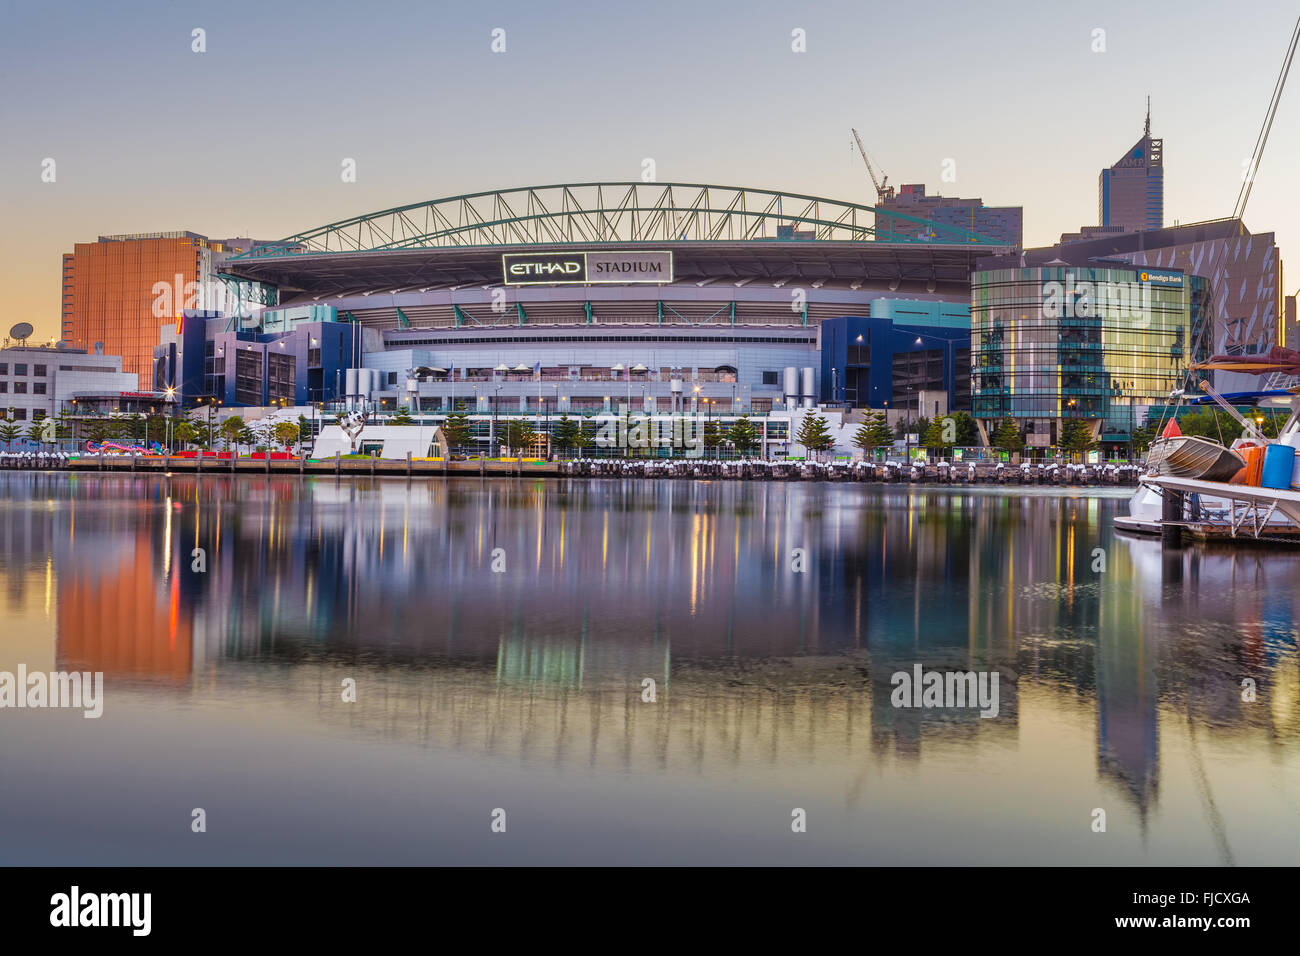 Melbourne, Australia - Feb 21 2016: Etihad Stadium viewed from Docklands waterfront in early morning light - Stock Image